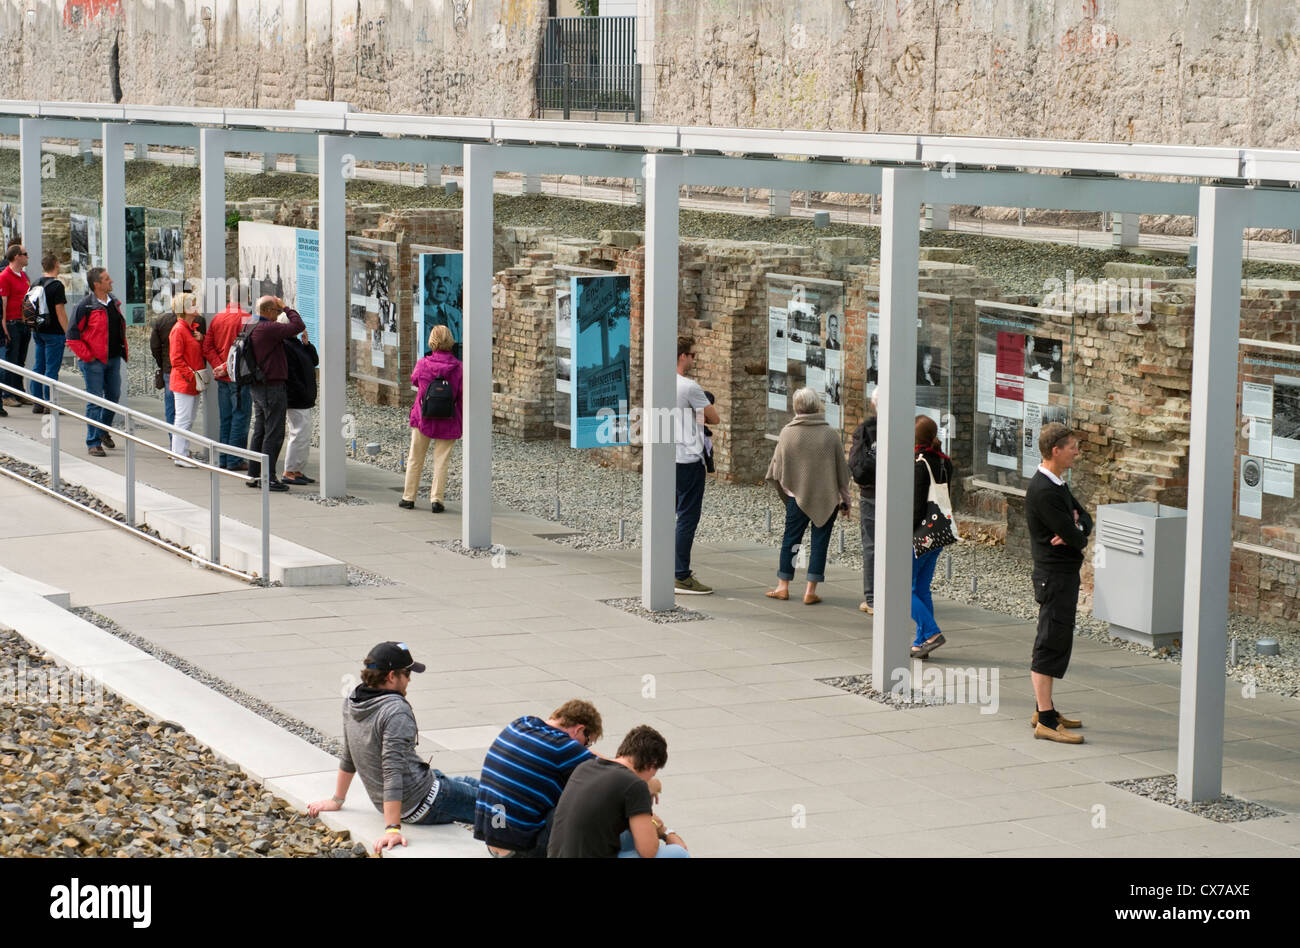 Tourists at the Topography of Terror outdoor museum in Berlin, Germany, which includes a preserved section of the - Stock Image